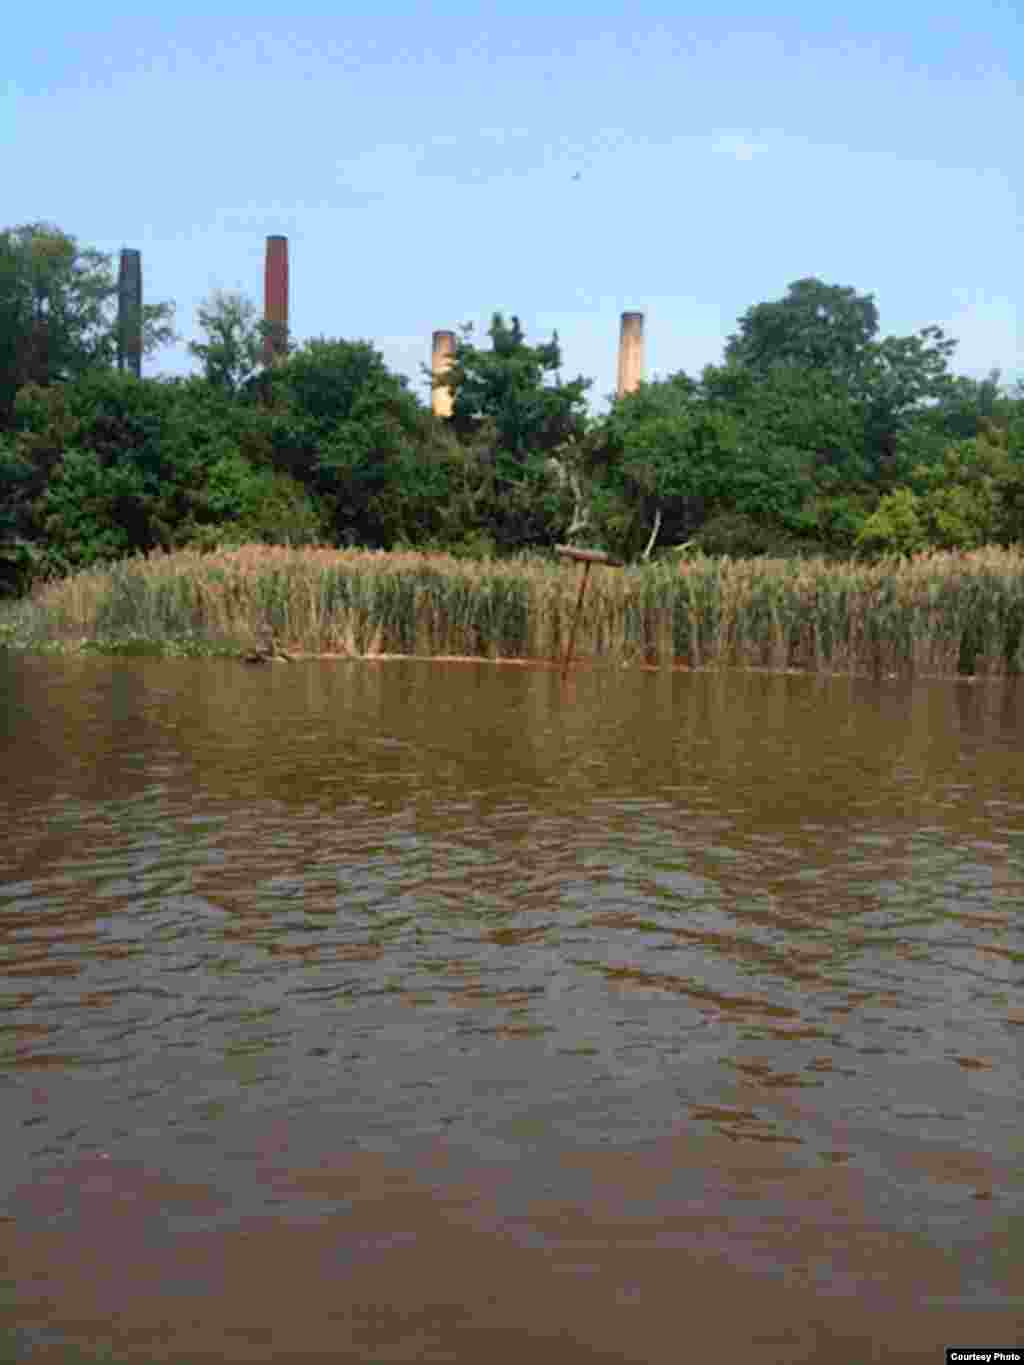 The smokestacks from a closed power plant are a grim reminder of the toxic pollutants that flow into the river. (Groundwork Anacostia)